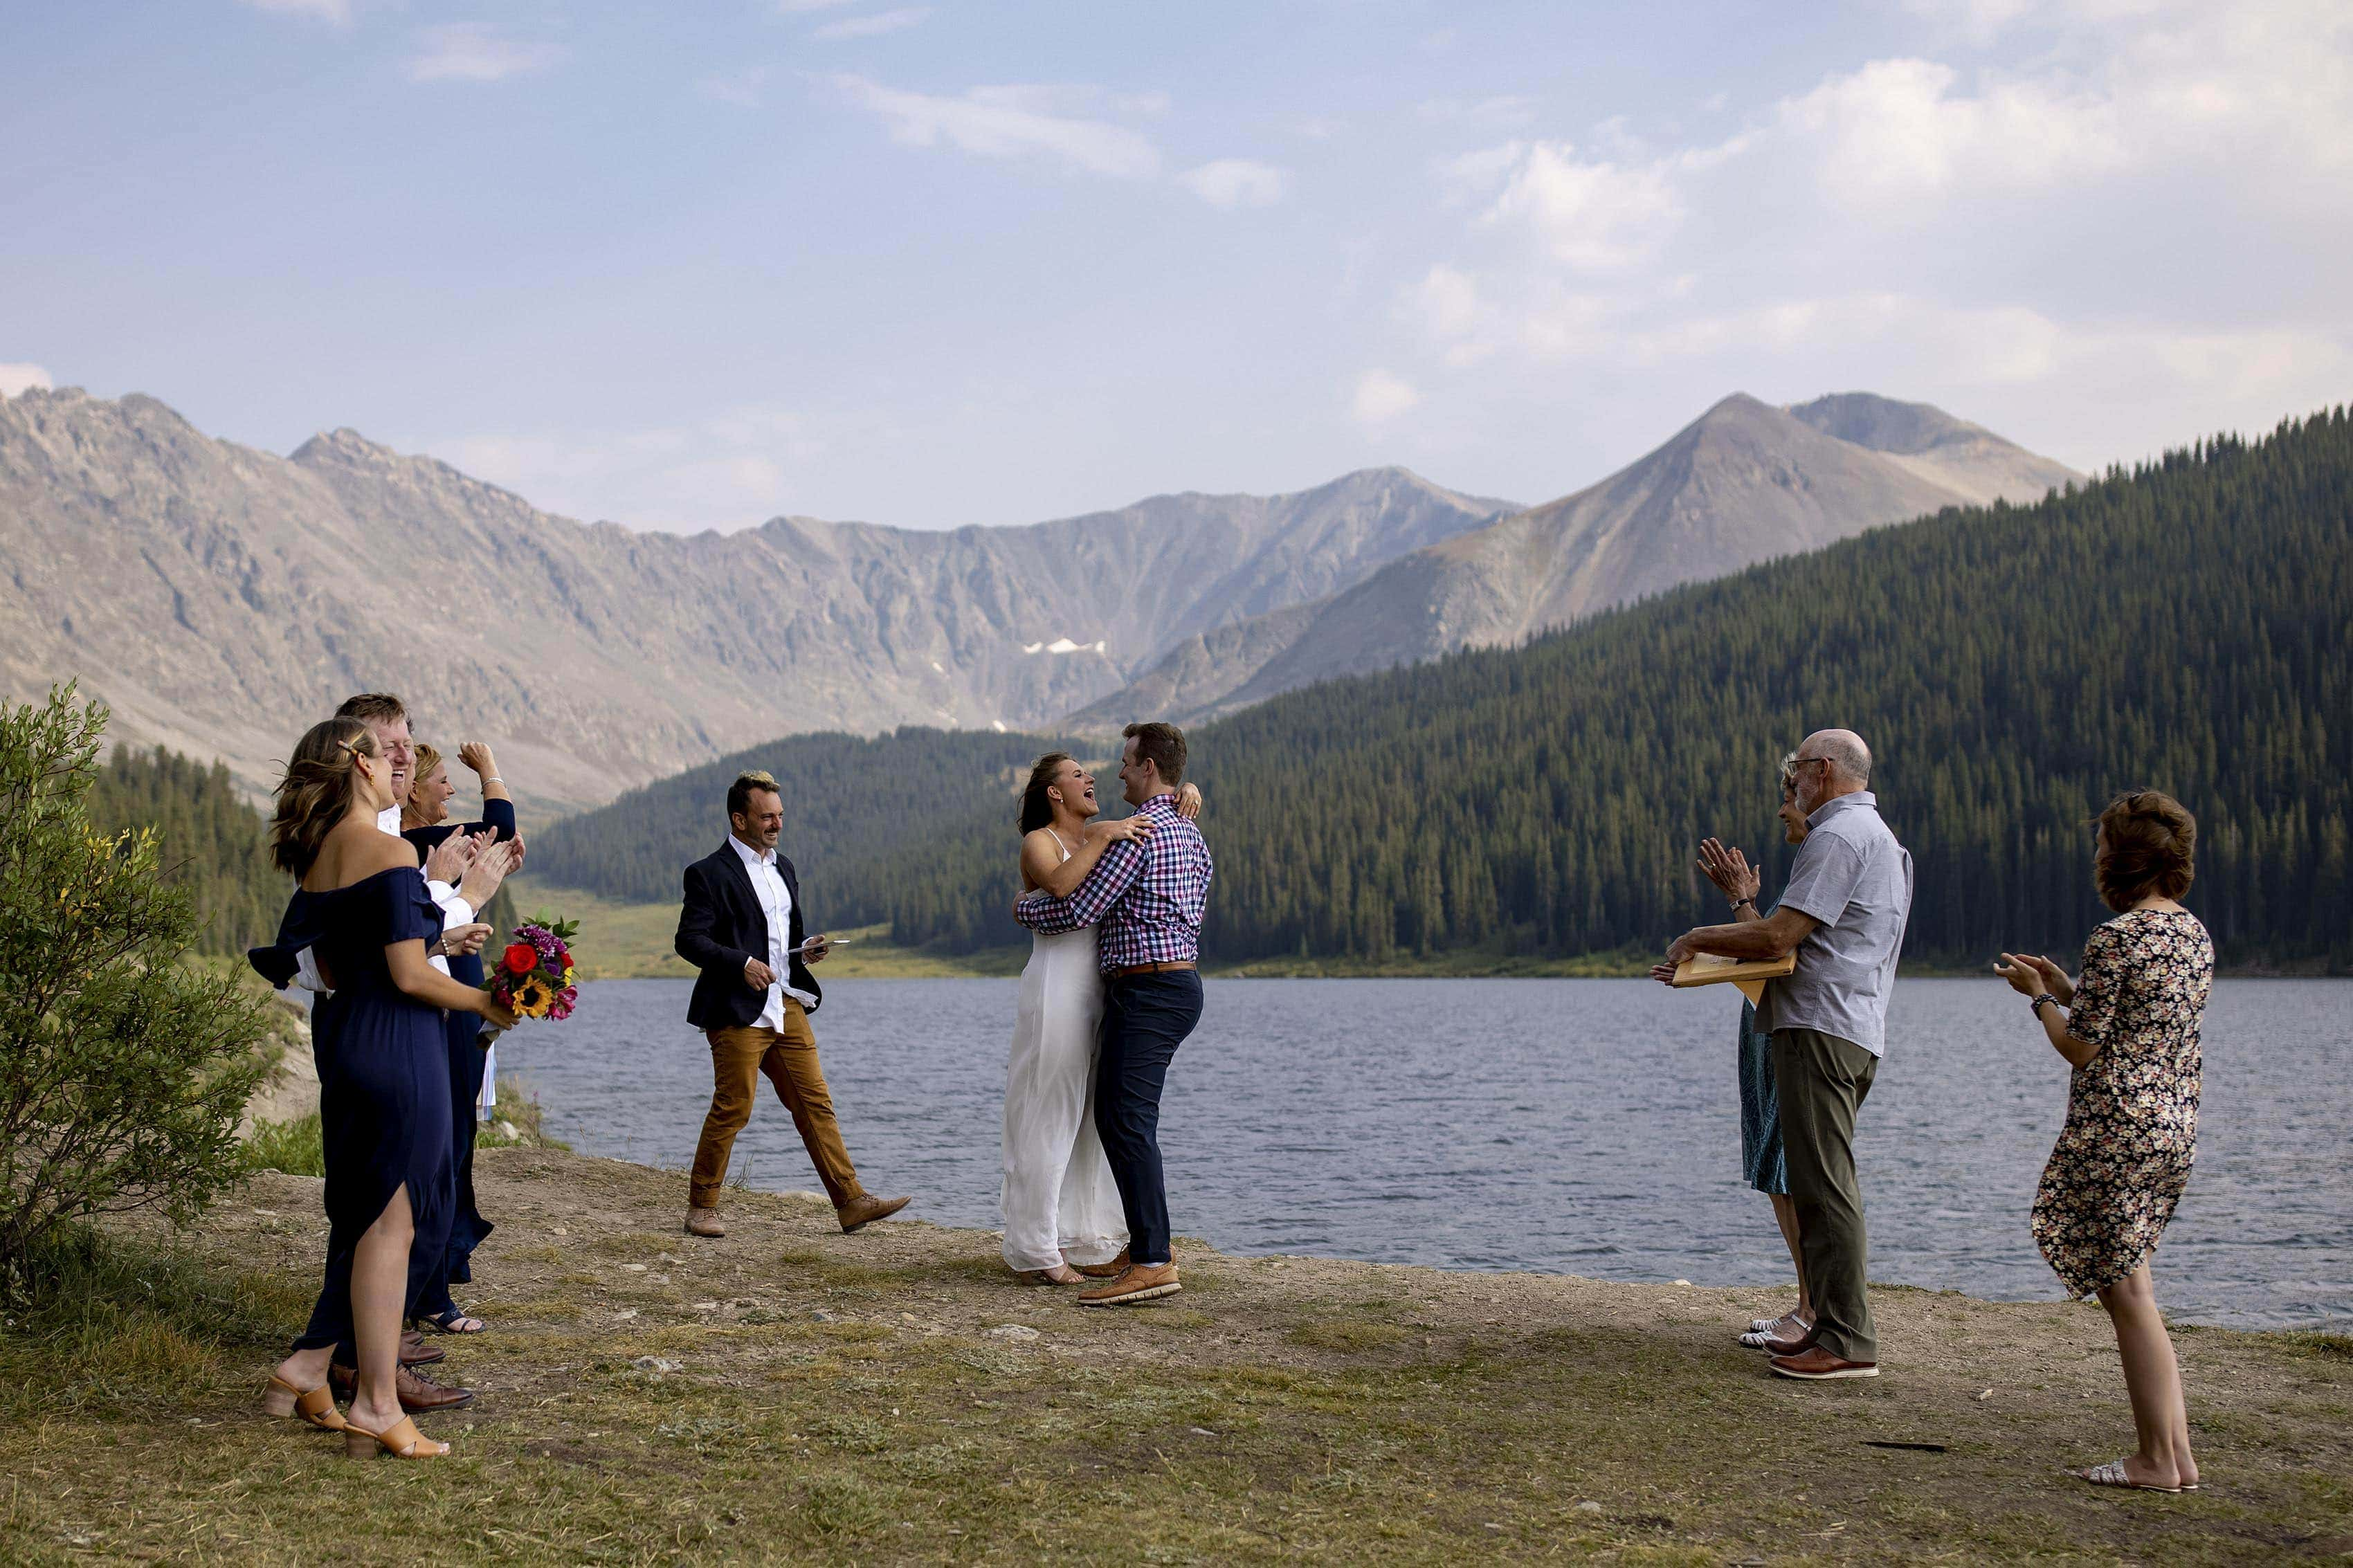 The couple react during their wedding ceremony at Clinton Gulch Dam Reservoir